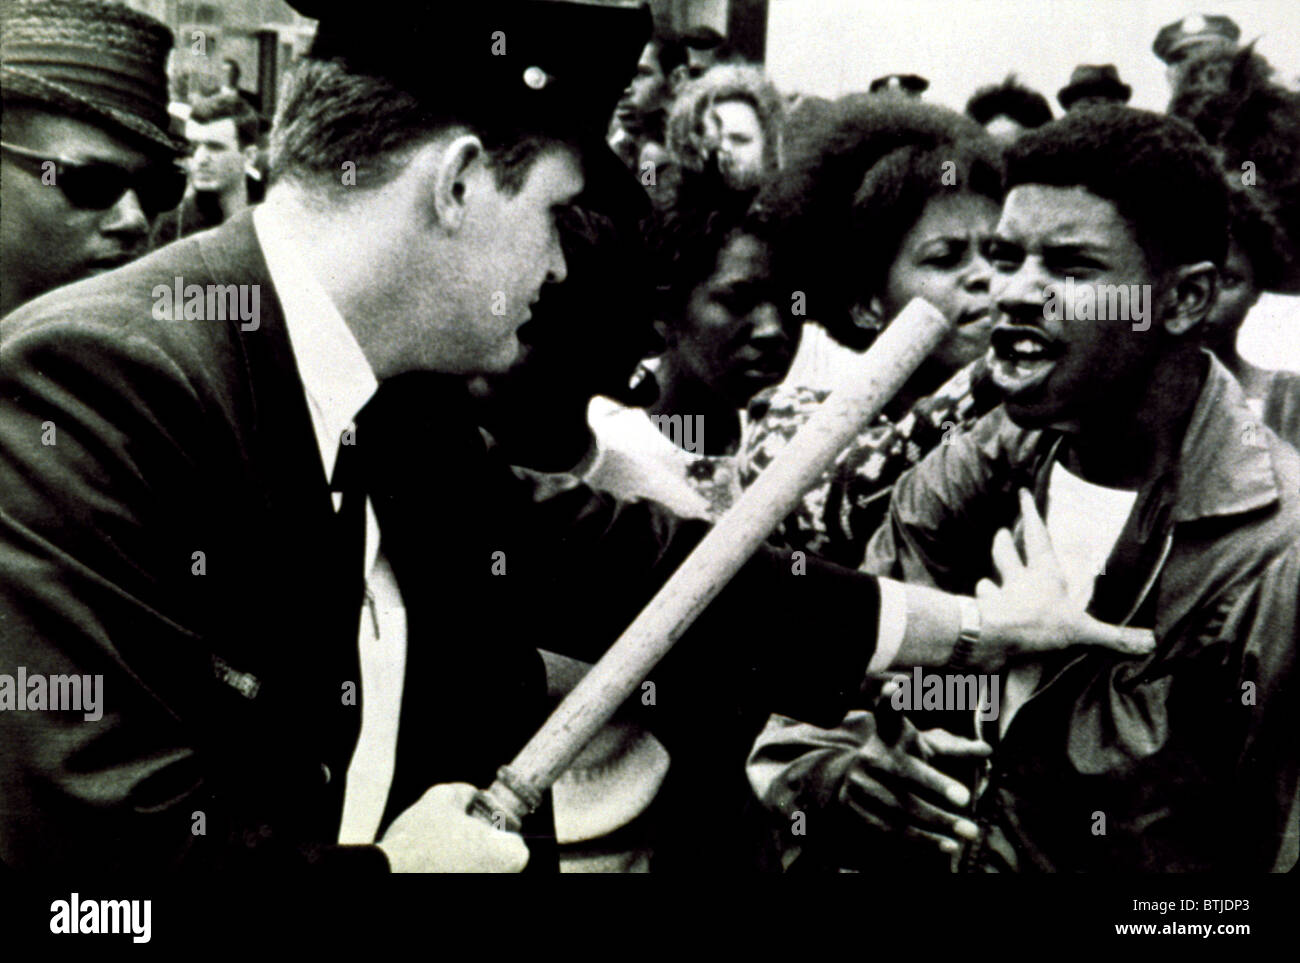 Civil Rights march confrontation with police in 1964 - Stock Image